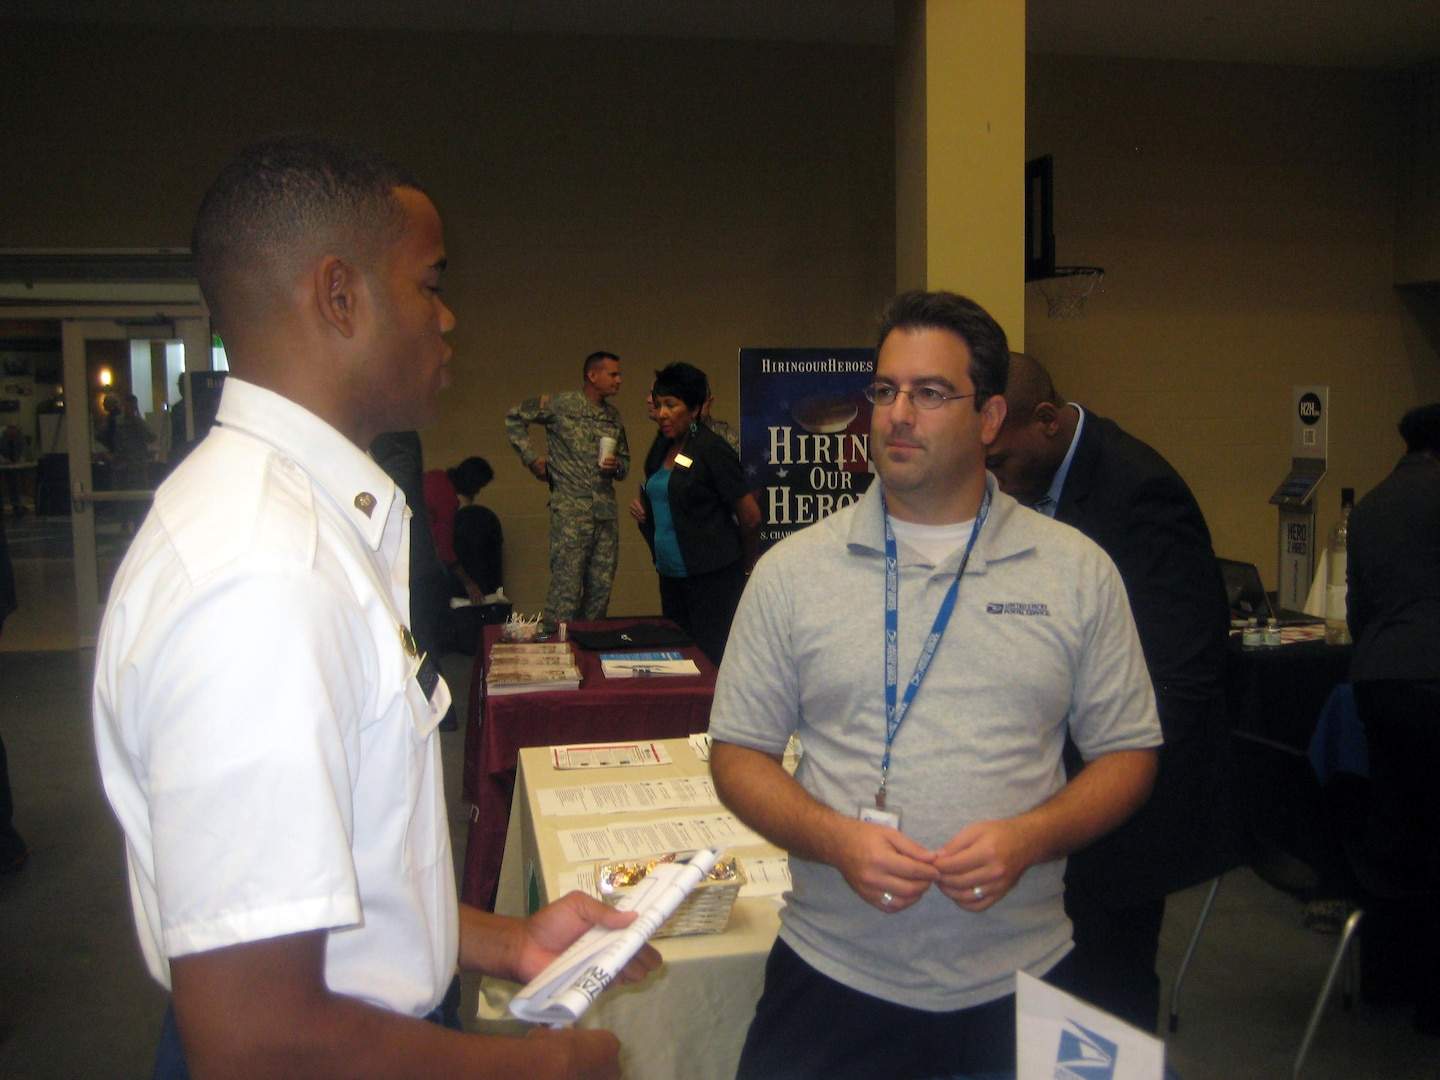 The National Guard Bureau recently hosted a jobs event for Guard spouses. In this photo, an Army Reserve Soldier speaking with a recruiter during the   Hire Our Heroes job fair the New York National Guard hosted at the Farmingdale Armed Forces Reserve Center on Wednesday, Aug. 14, 2013.